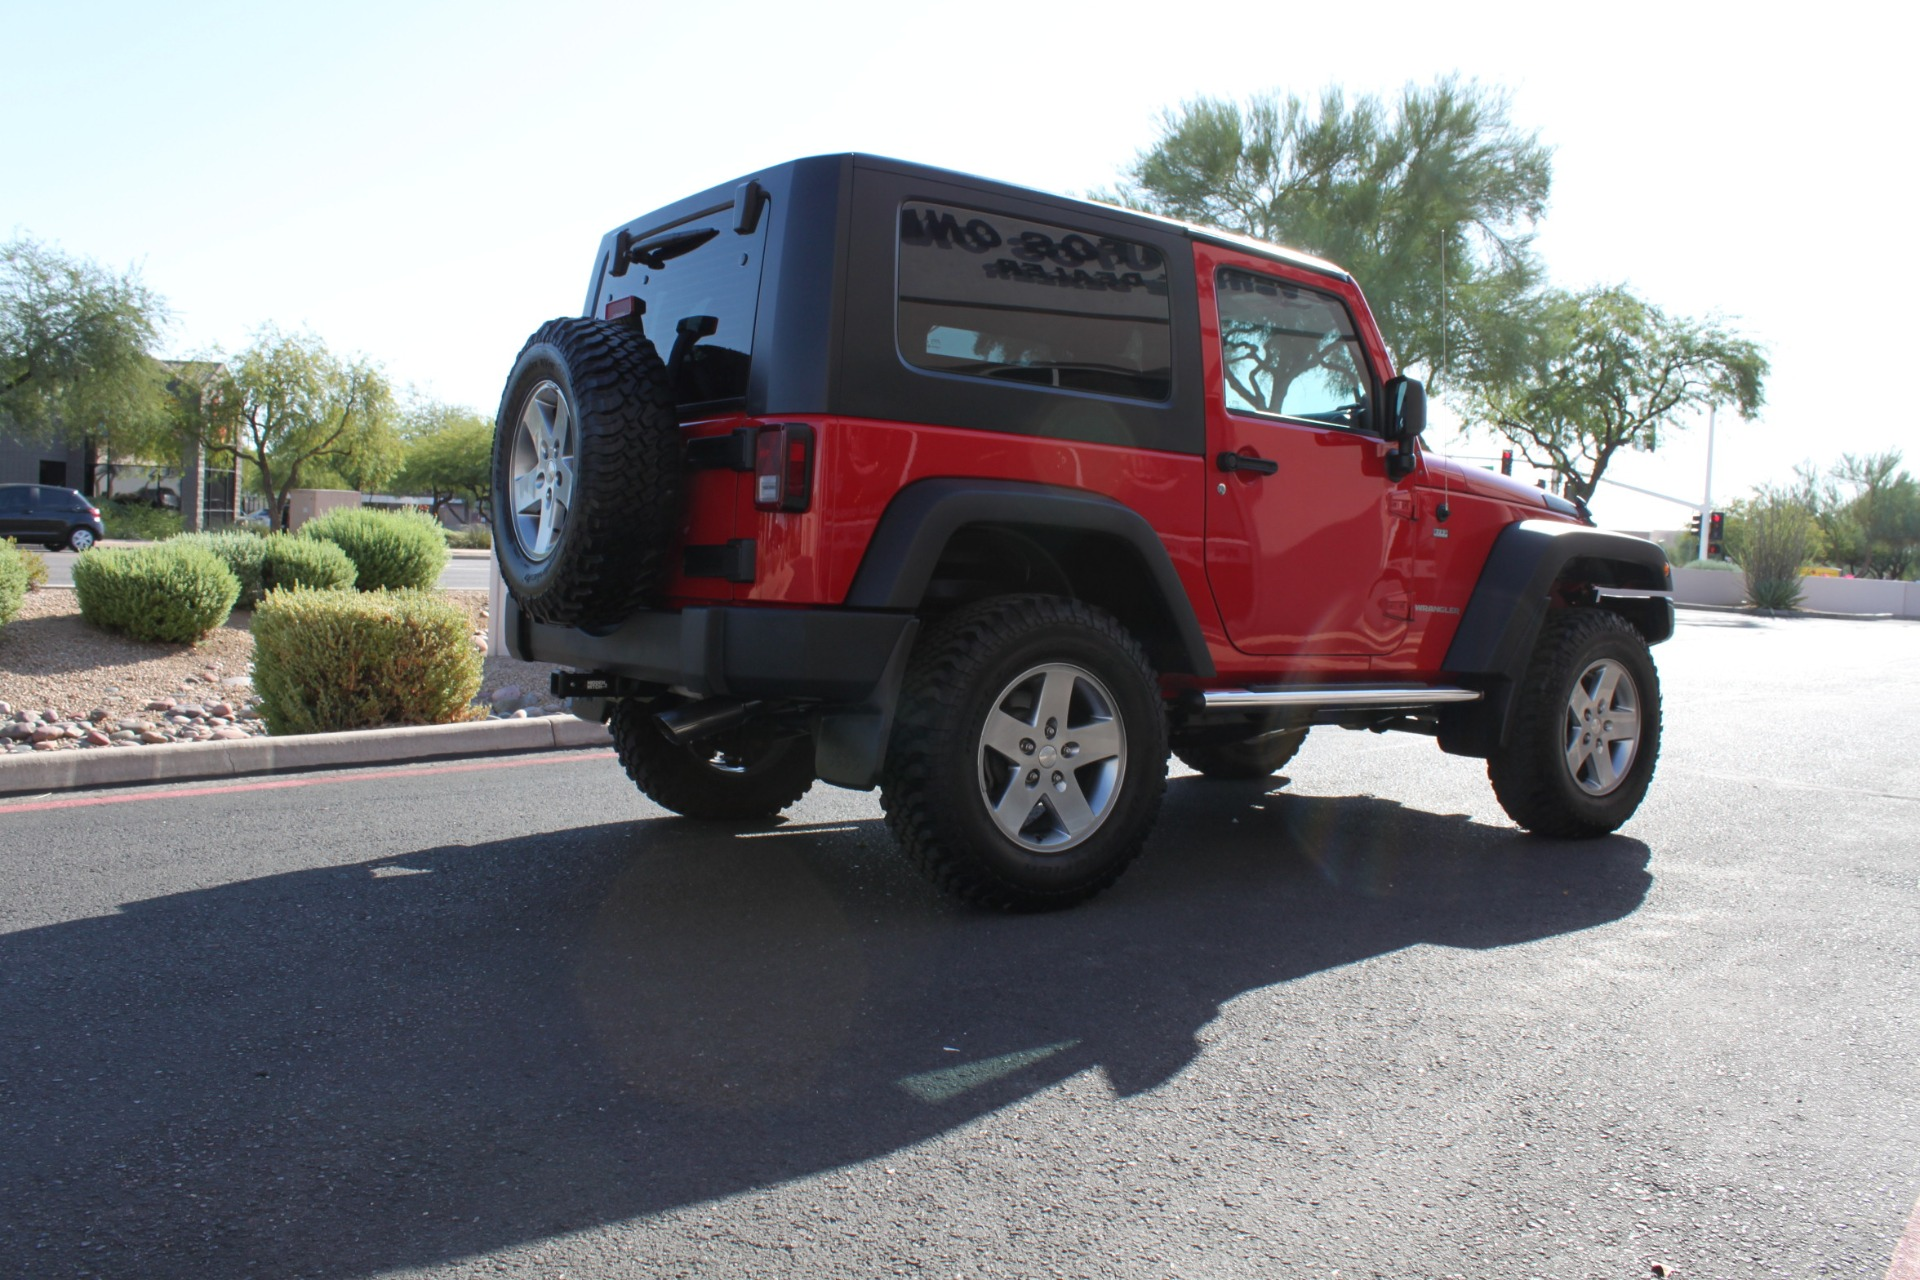 Used-2007-Jeep-Wrangler-X-Ripp-Supercharged-LS400